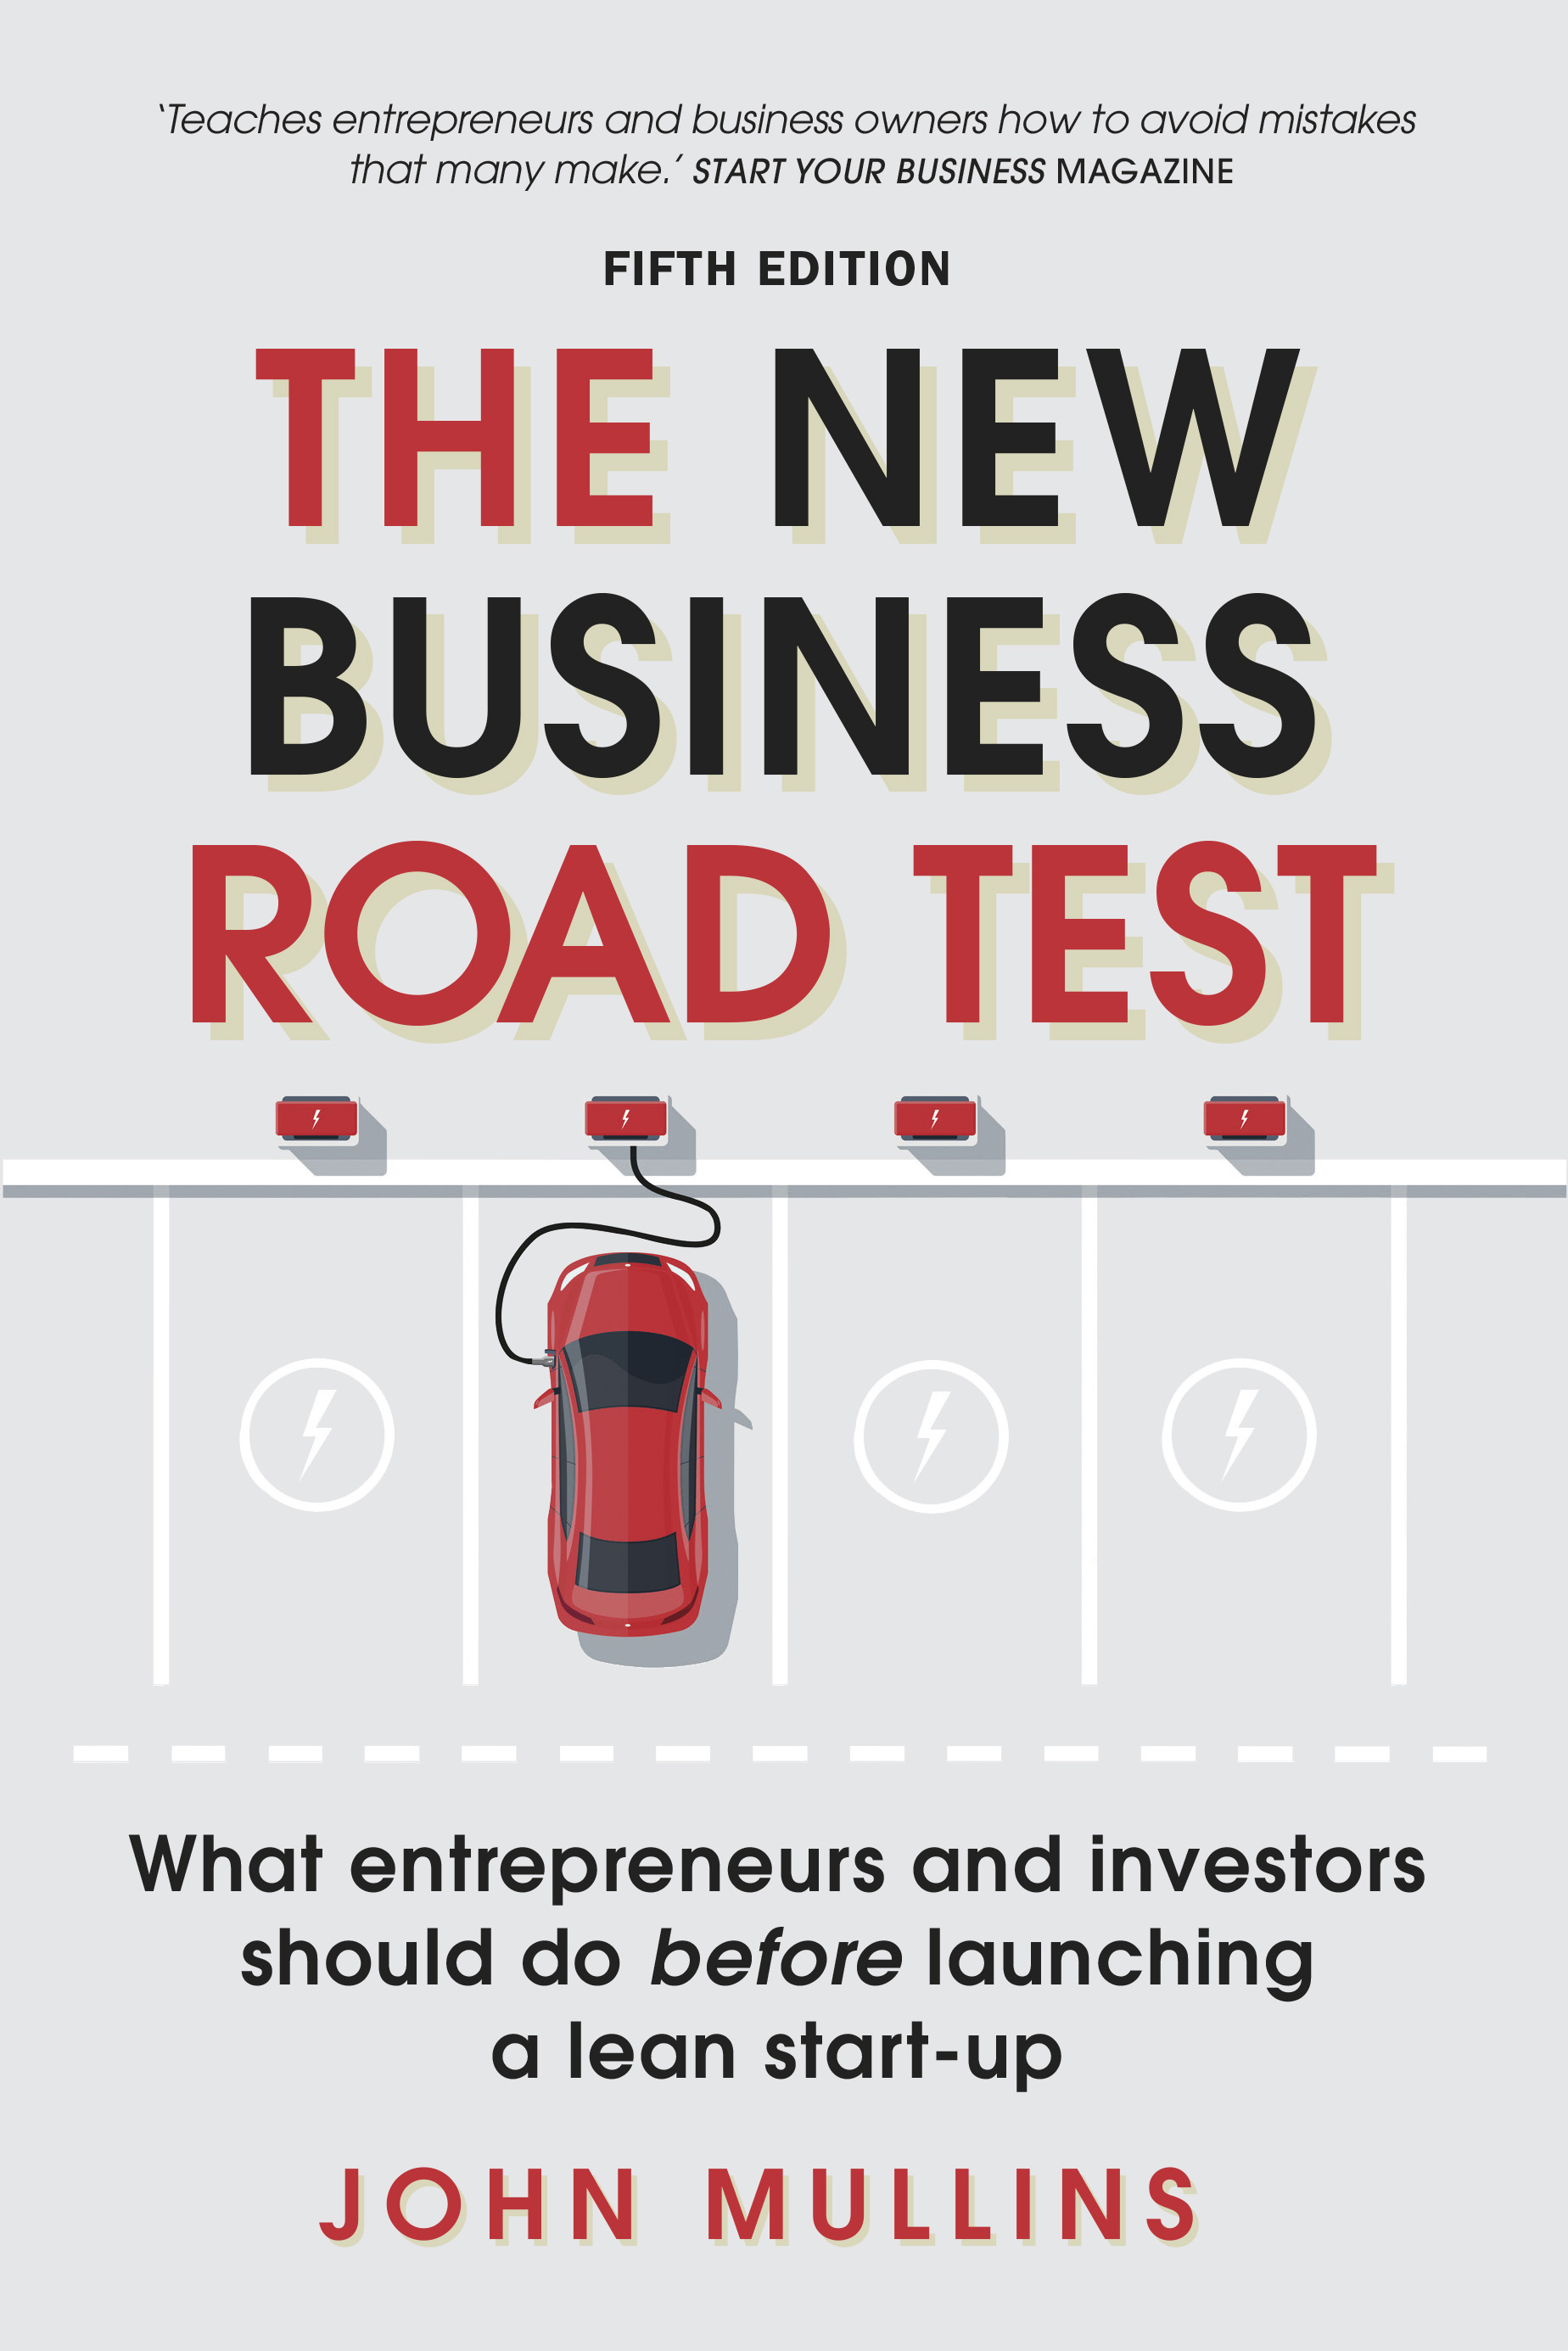 The New Business Road Test: What entrepreneurs and investors should do before launching a lean start-up (5th Edition), reviewed